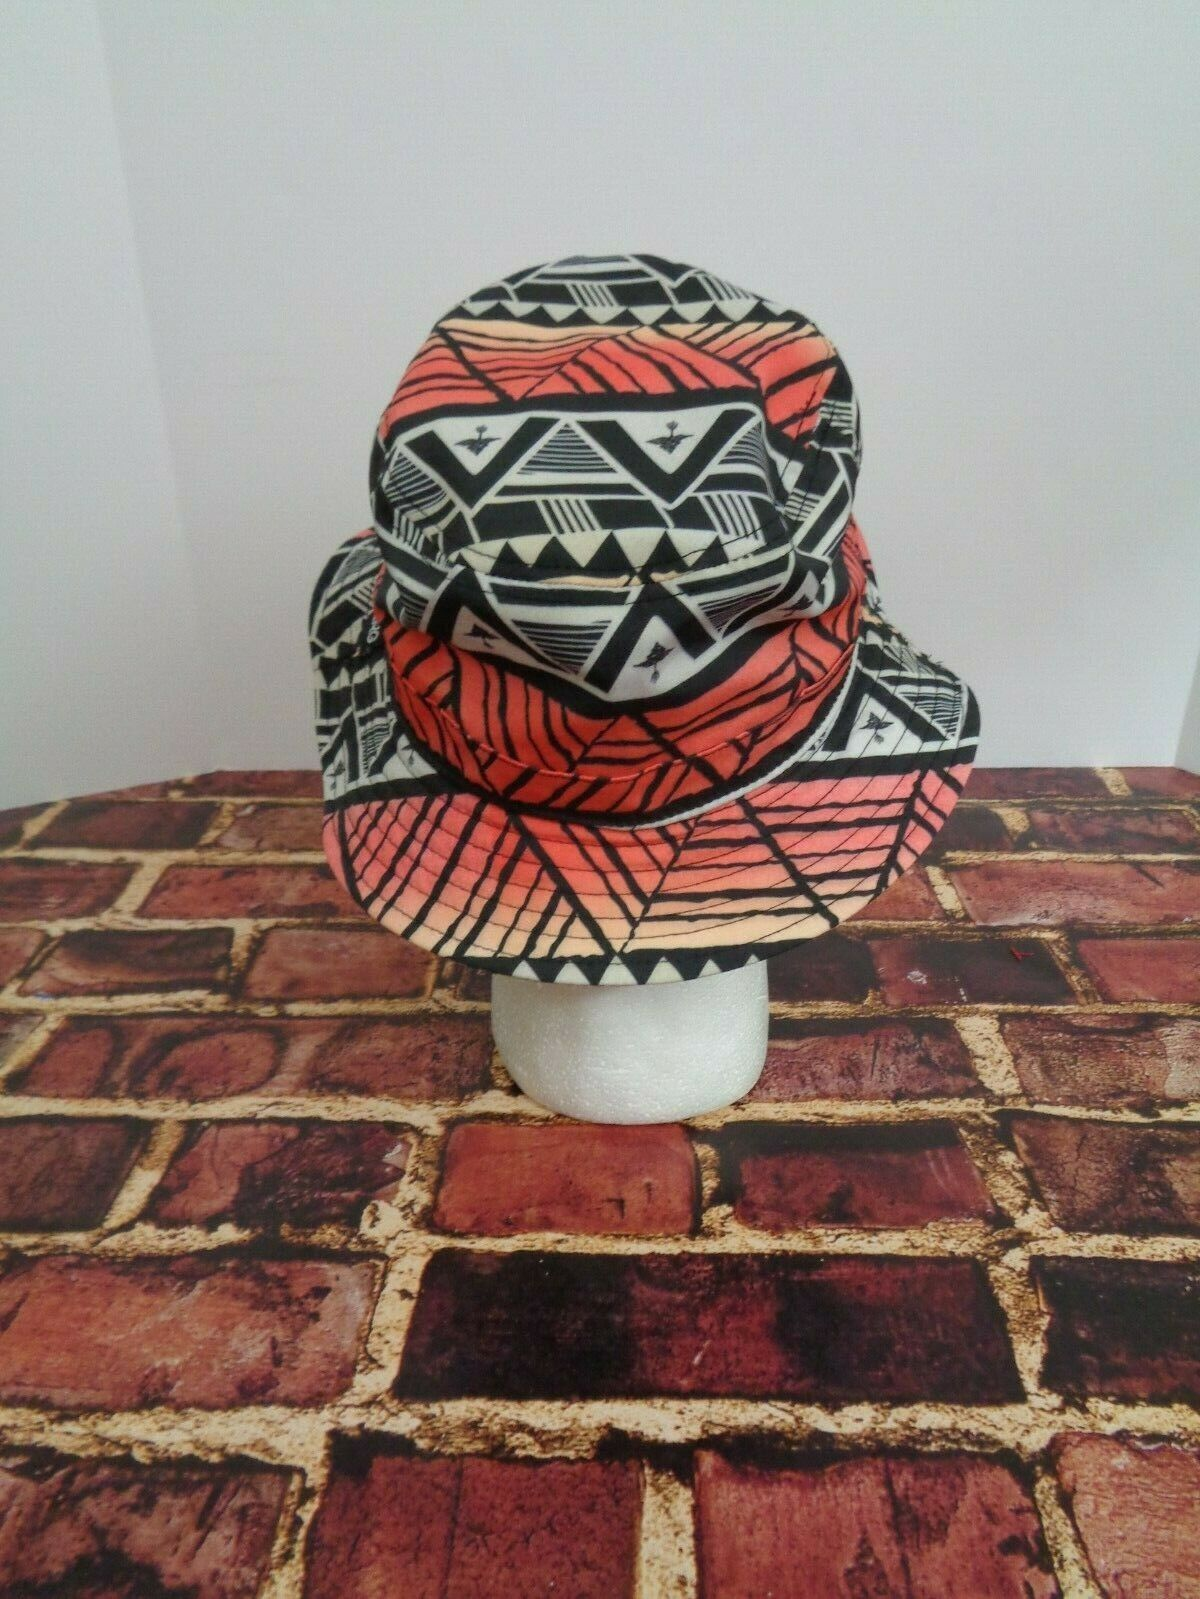 LRG Lifted Research Group FLOPPY Cap Hat Sun Fashion Black Orange Red True Heads image 4